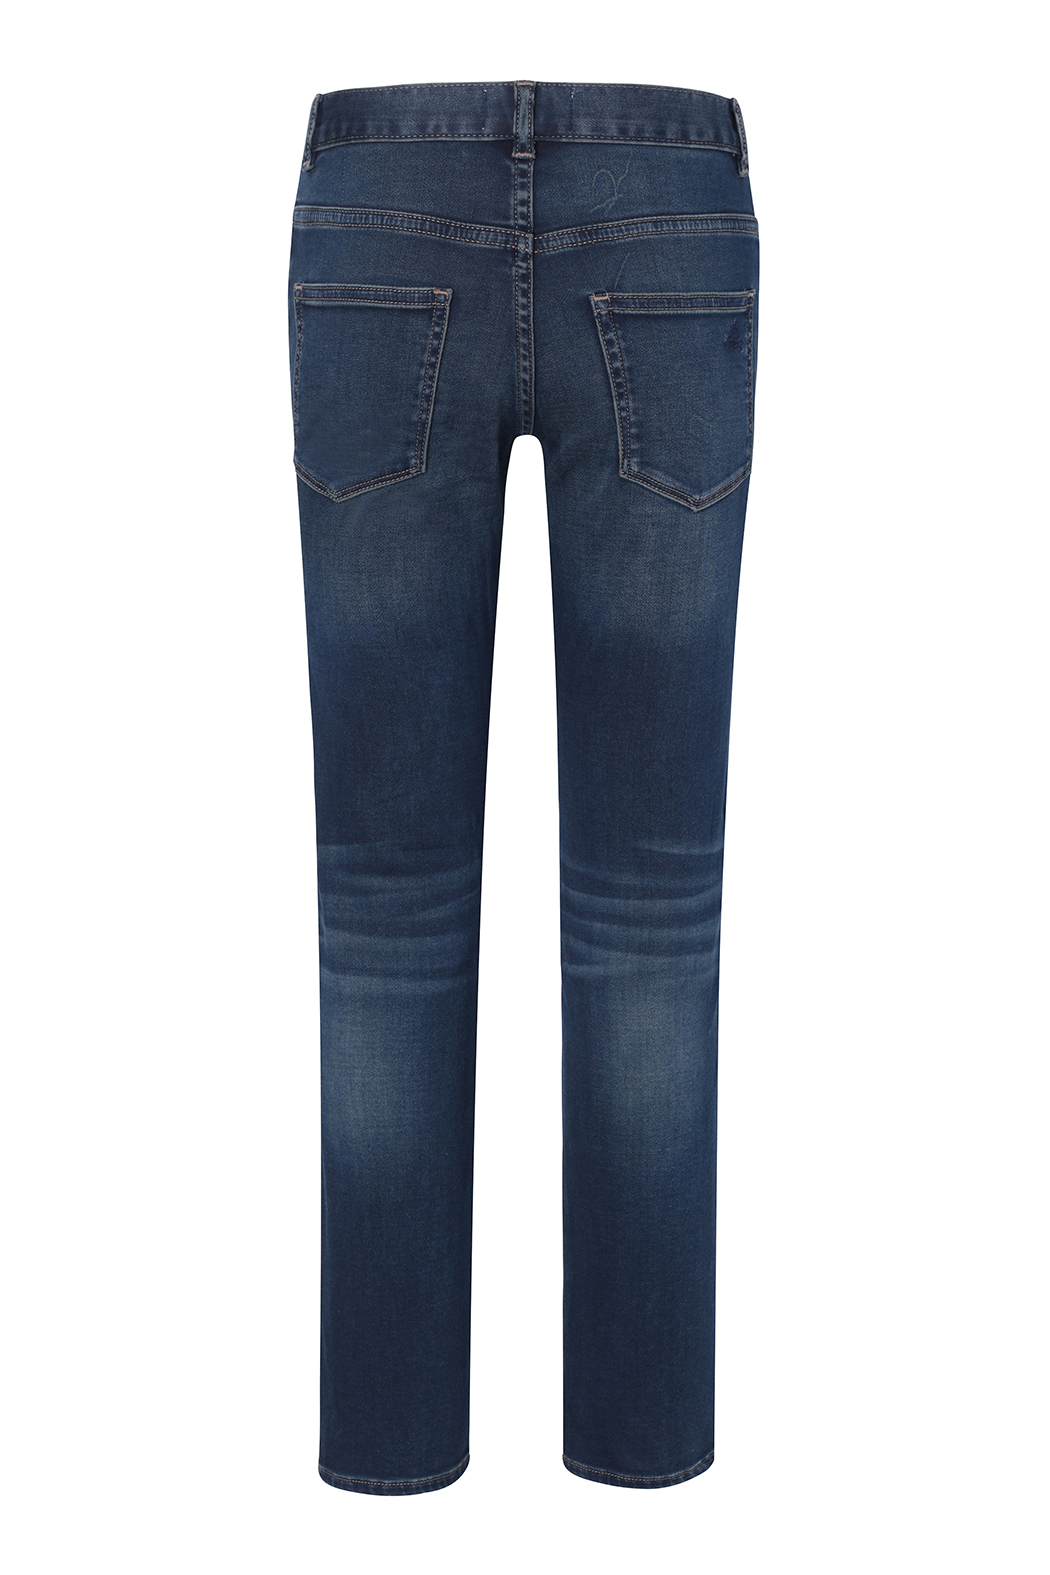 DL1961 Brady Slim Jeans 4190 - Front Full Image